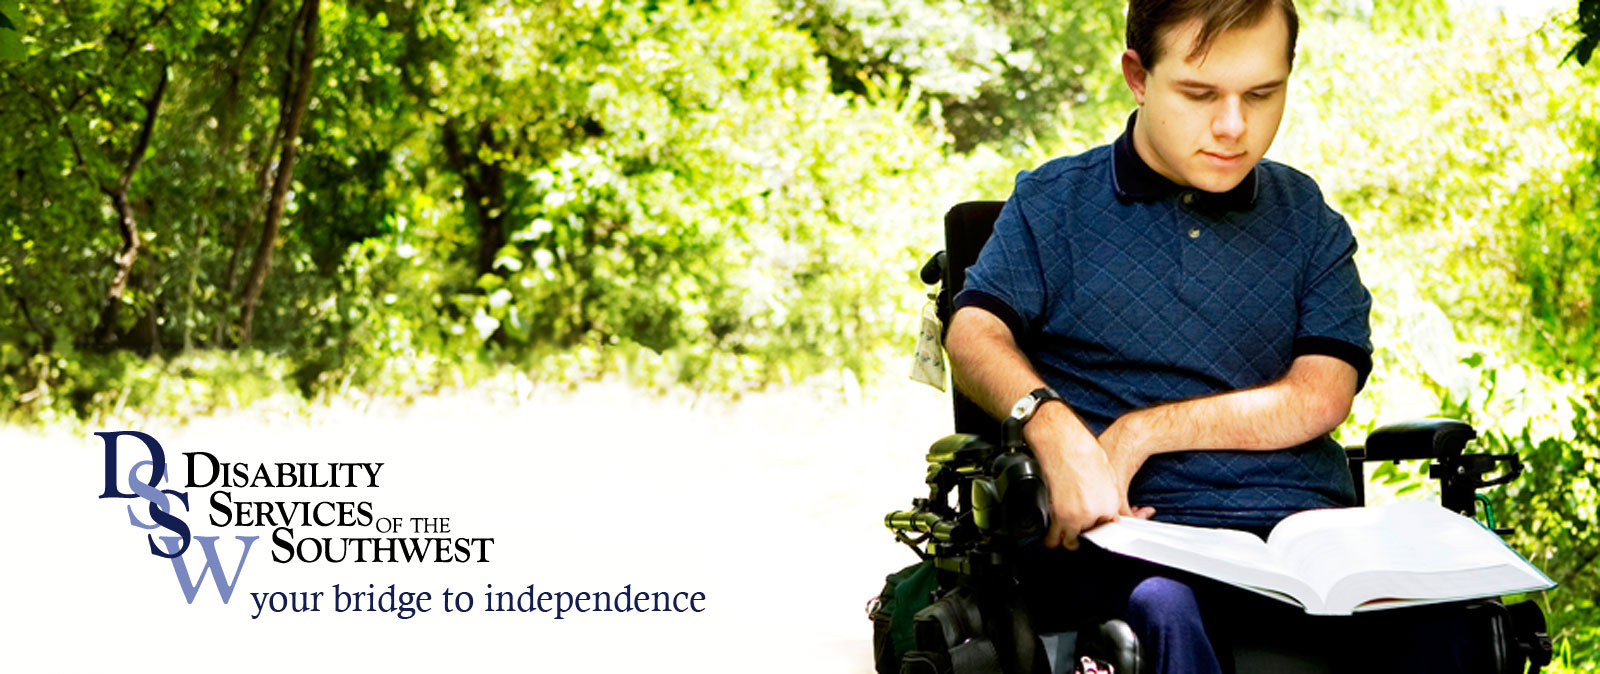 Disability Services of the Southwest. Your bridge to independence.